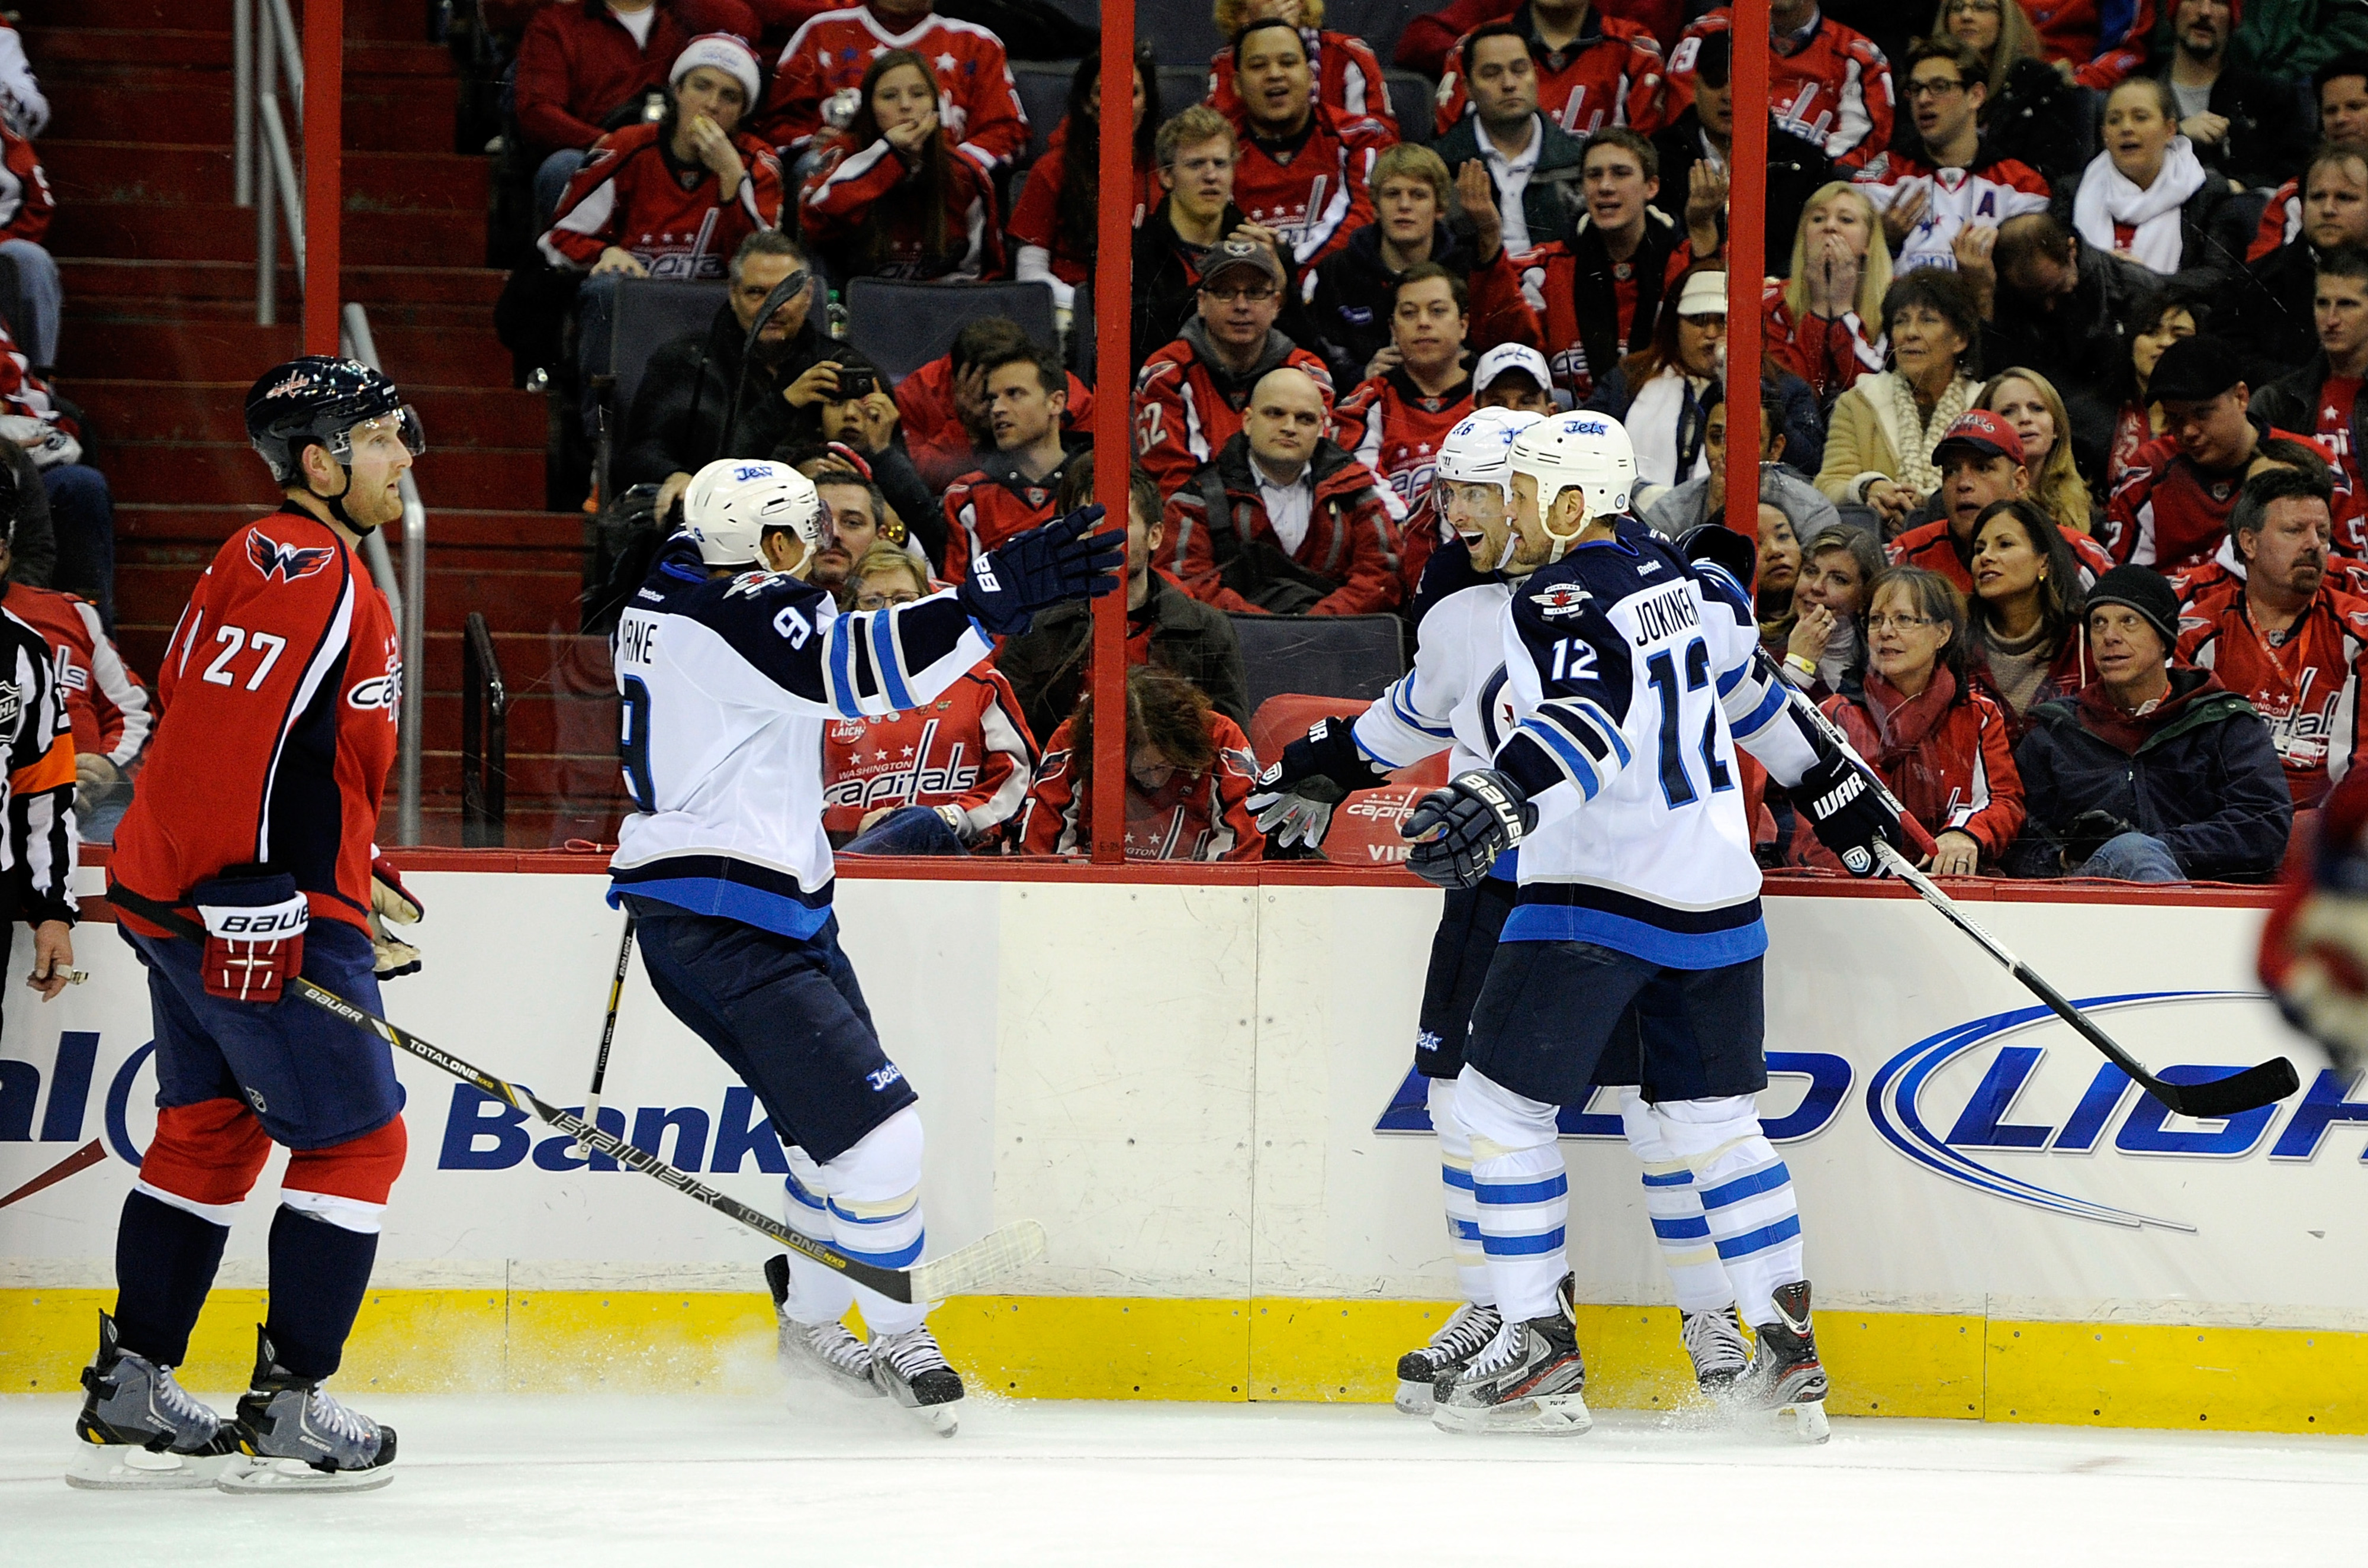 Evander Kane, #9, congratulates Blake Wheeler after his goal in Washington Tuesday night at the Capitals home opener. Jets won the game 4-2.